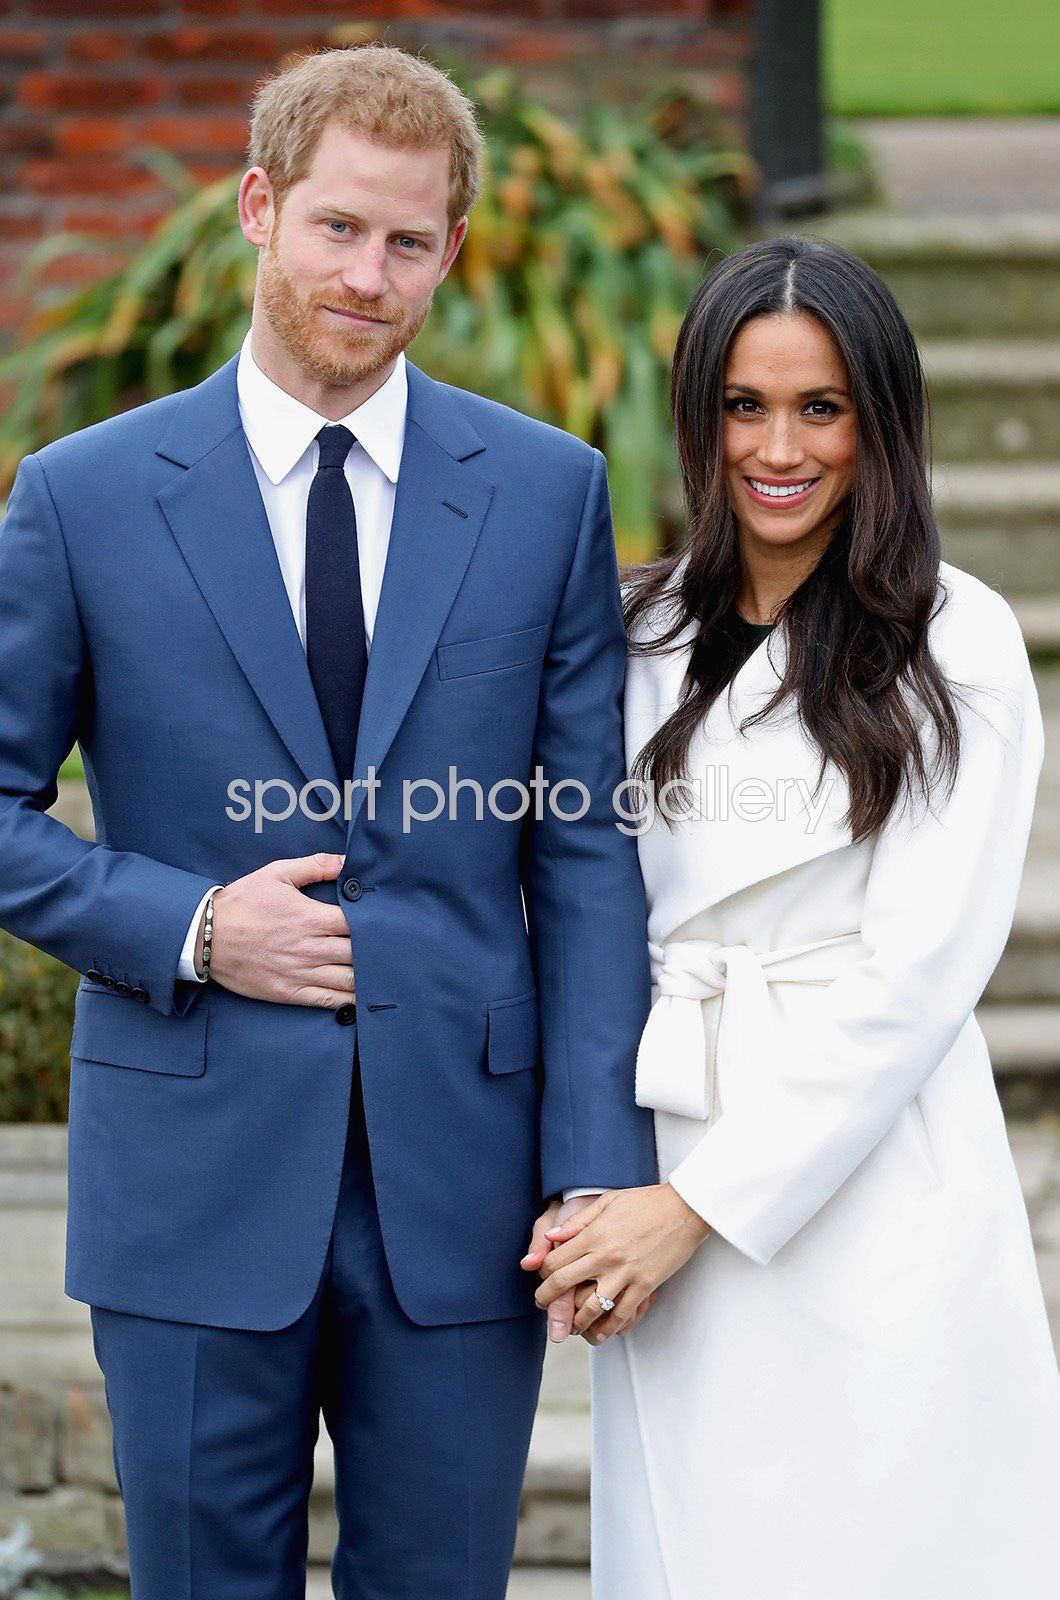 Prince Harry Engagement to Meghan Markle London 2017